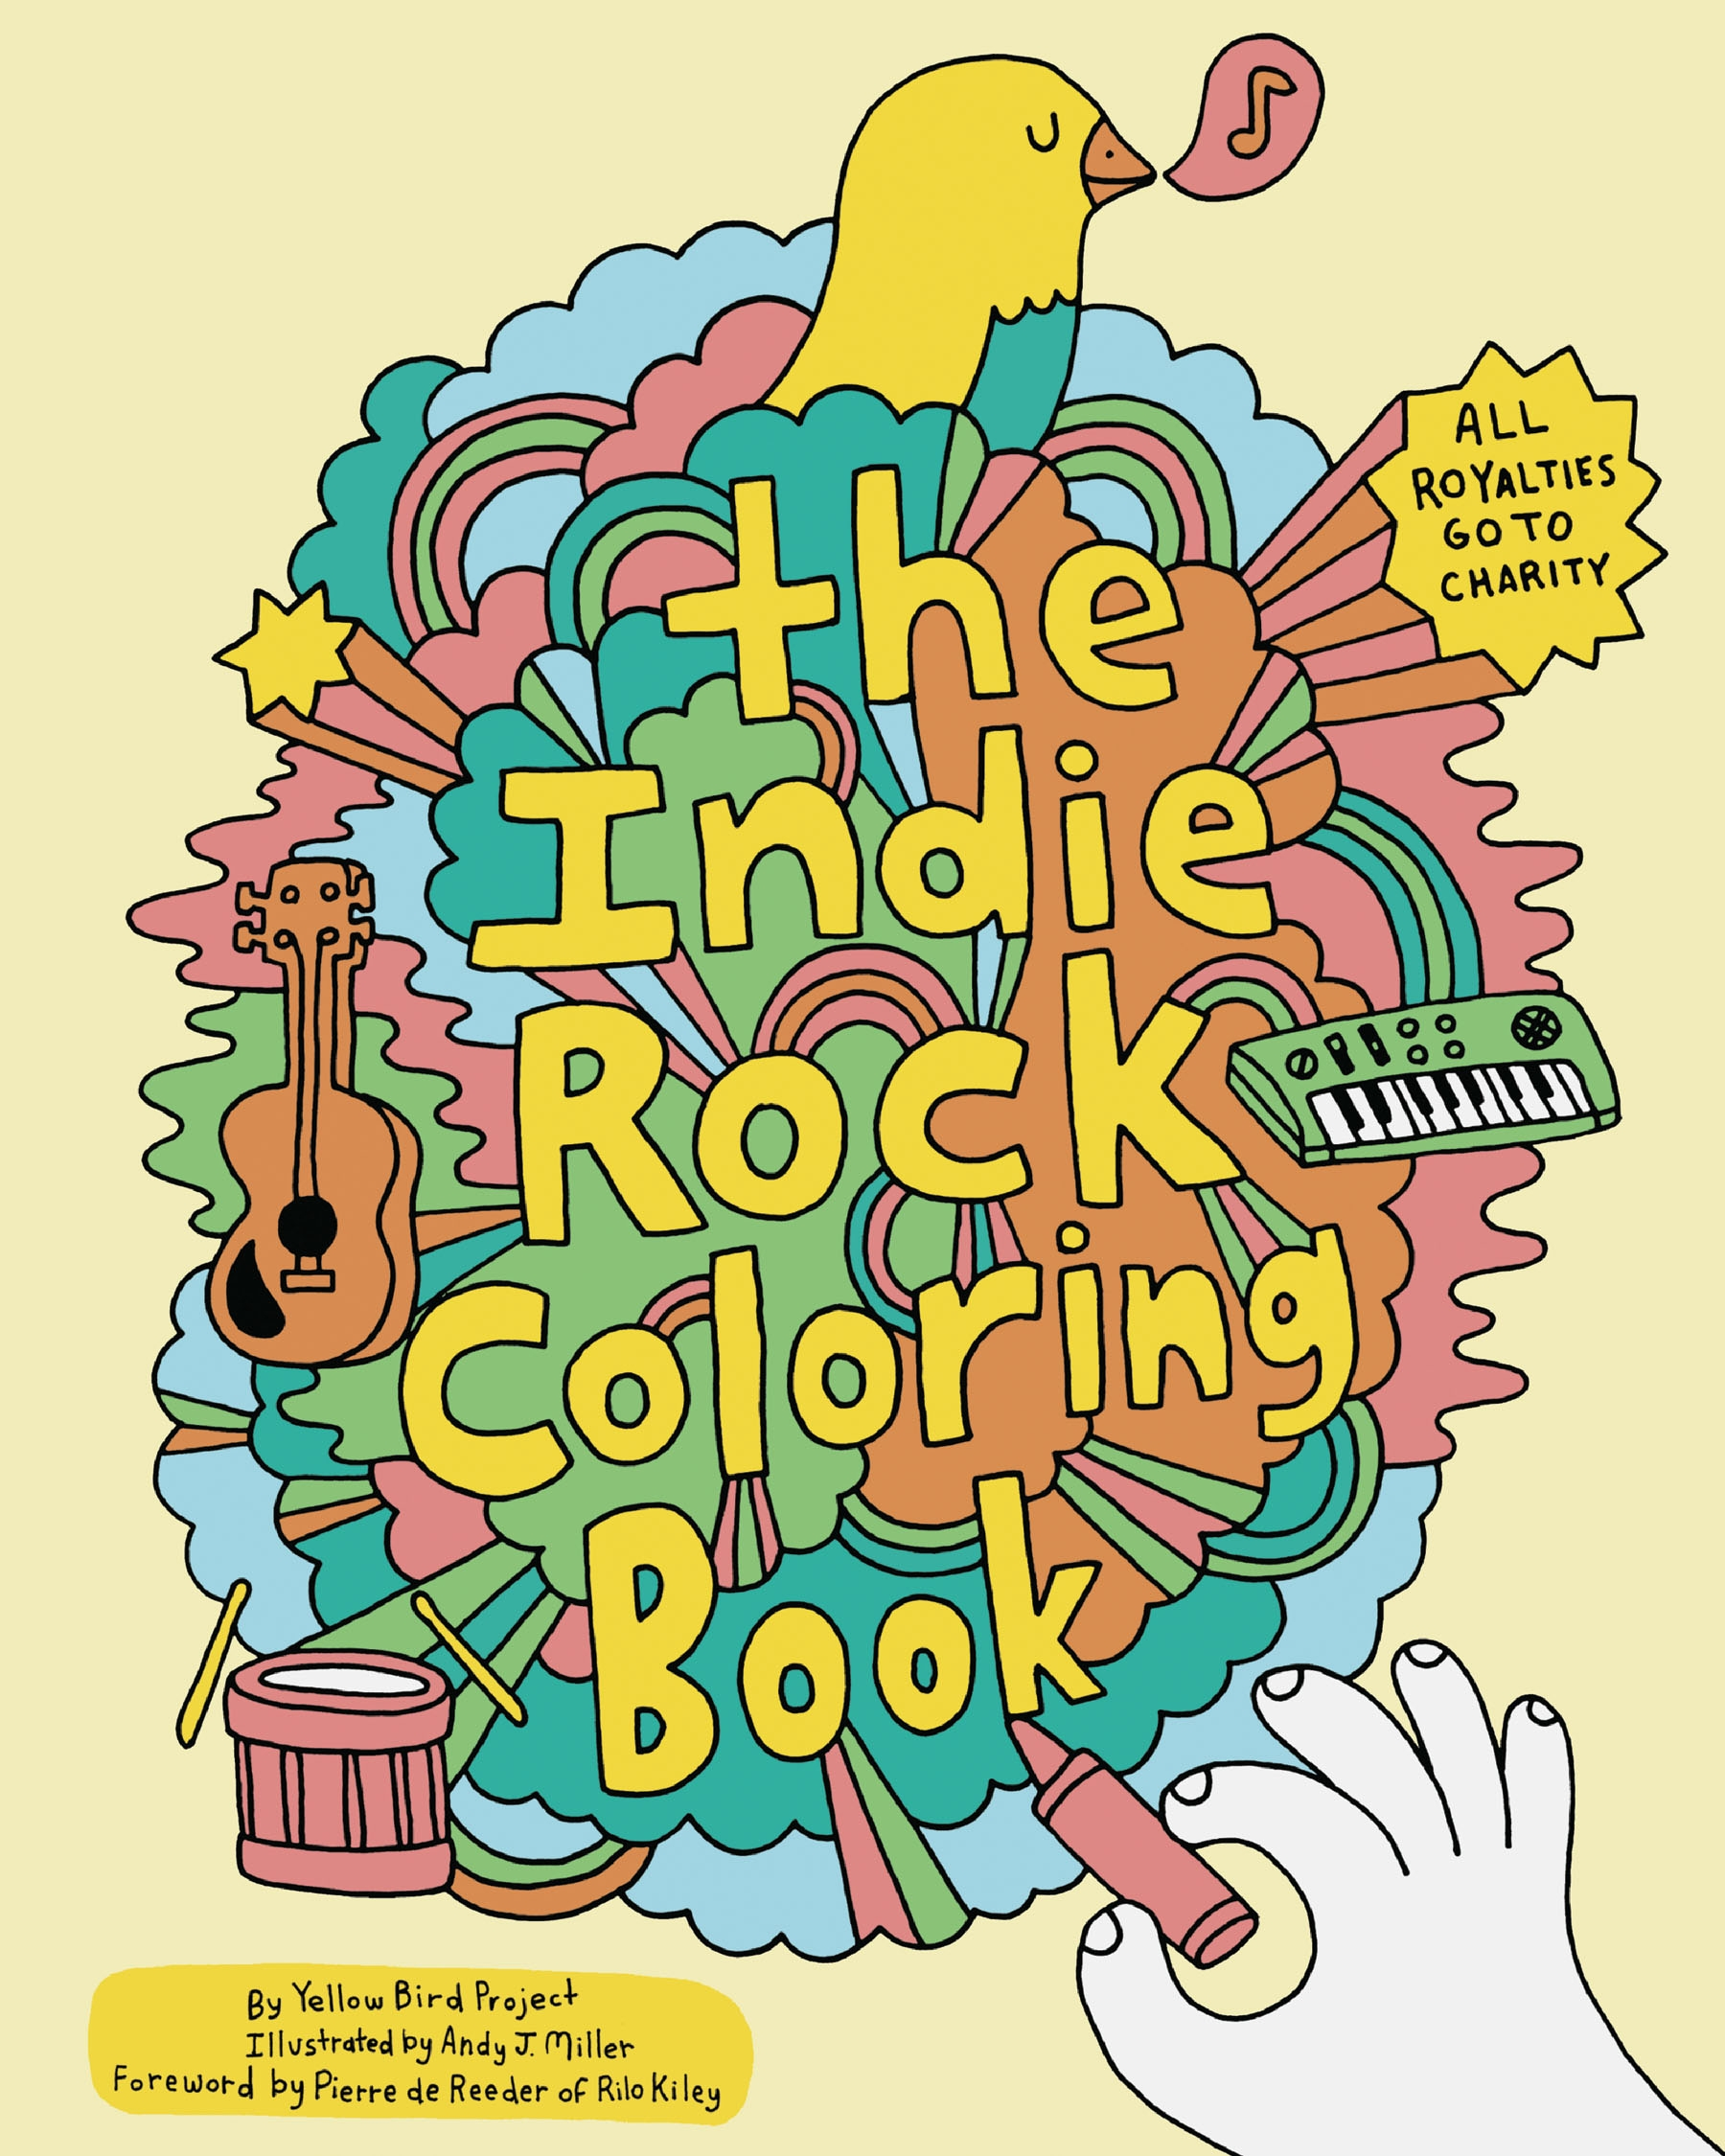 The In Rock Coloring Book